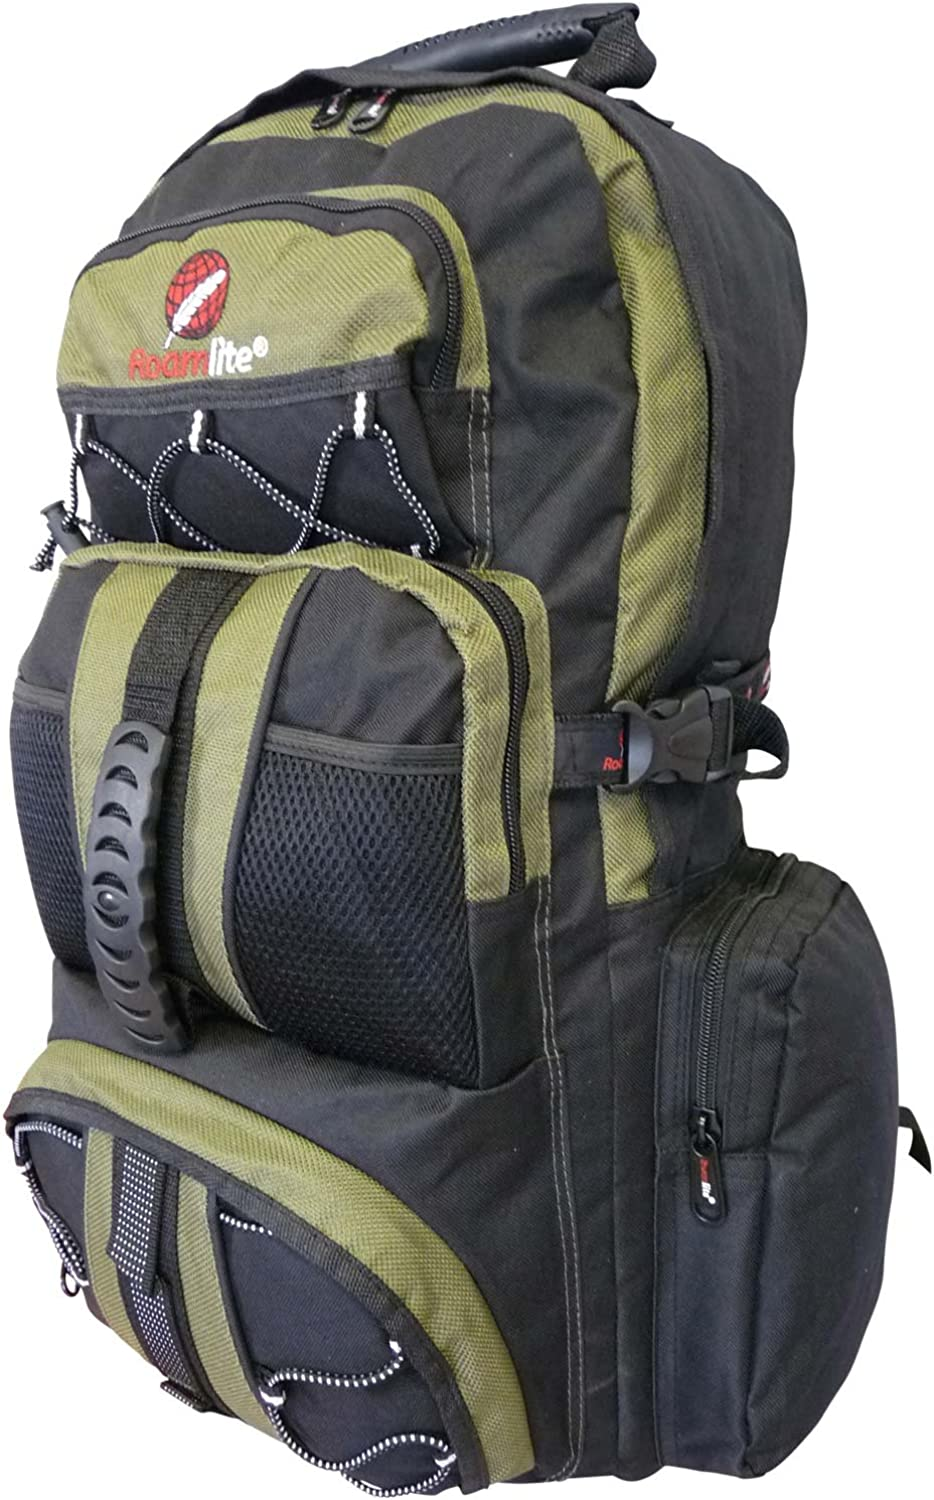 50 to 55 Litre Ltr Hand Luggage Size Roamlite Large Camping Backpacks Bags